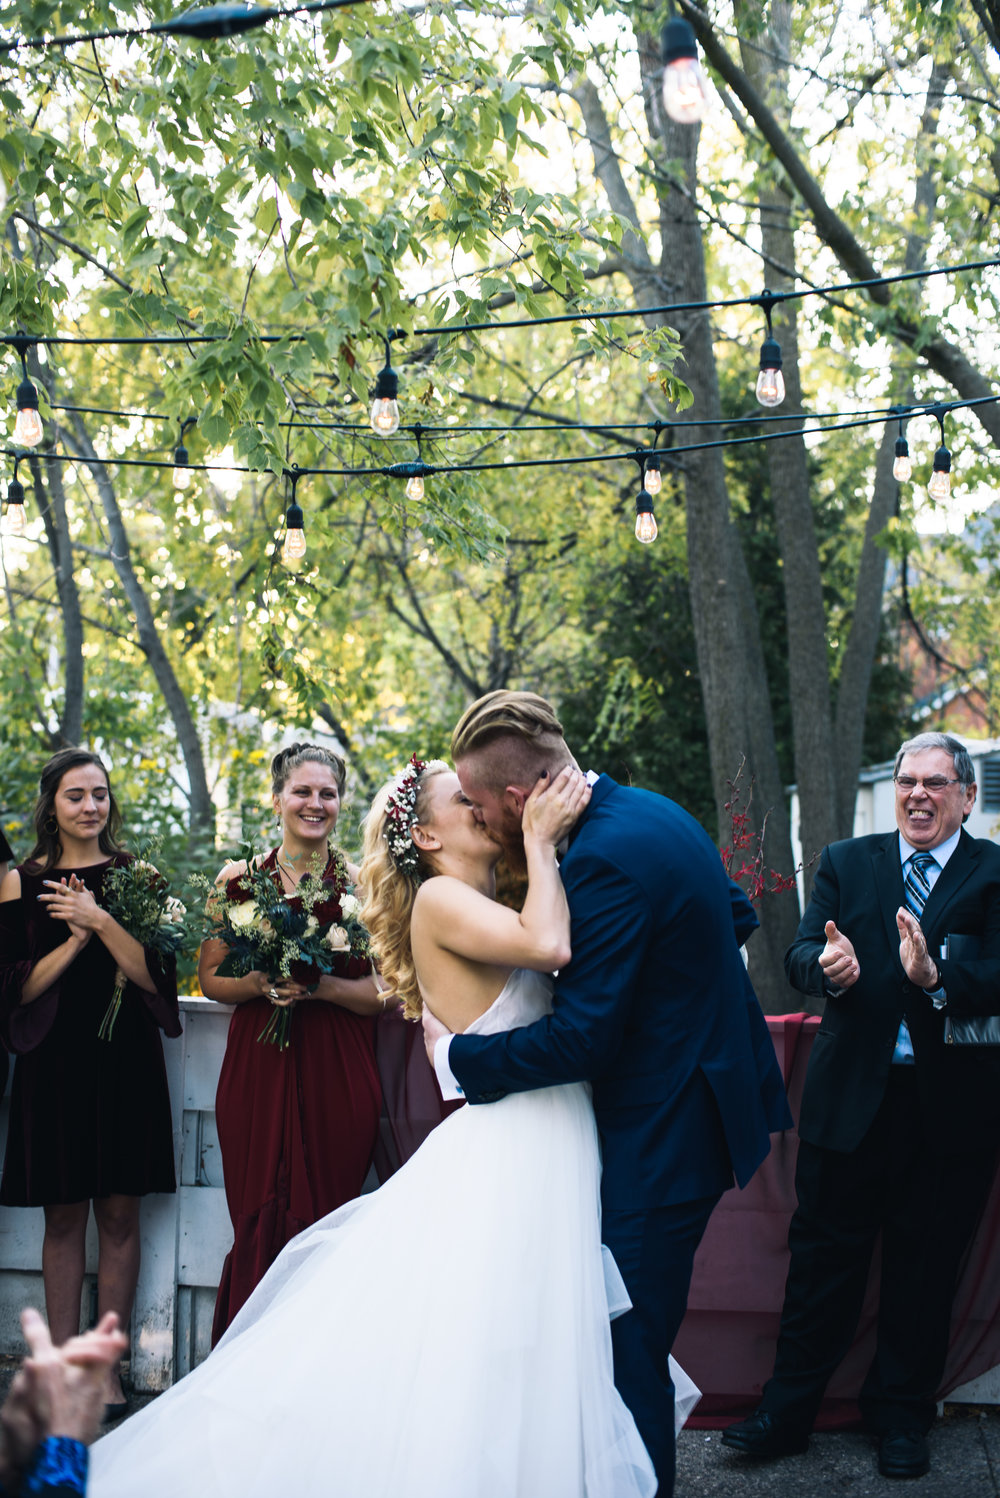 AndrewNatwedding (351 of 527).jpg